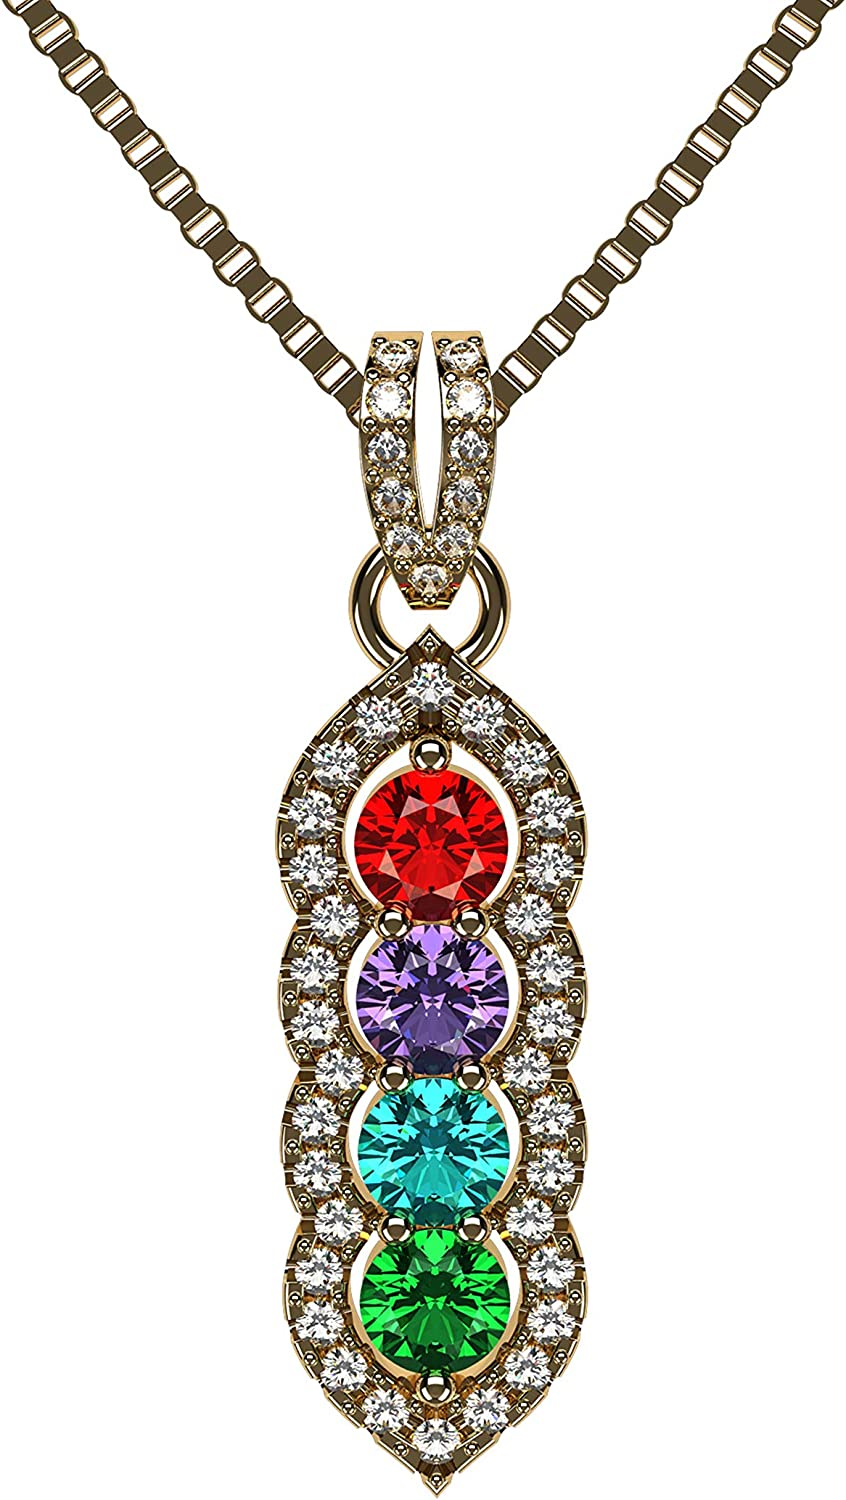 Max 53% Popular products OFF Halo Tower Mother's Necklace w 3 Simulated to in Birthstones 6